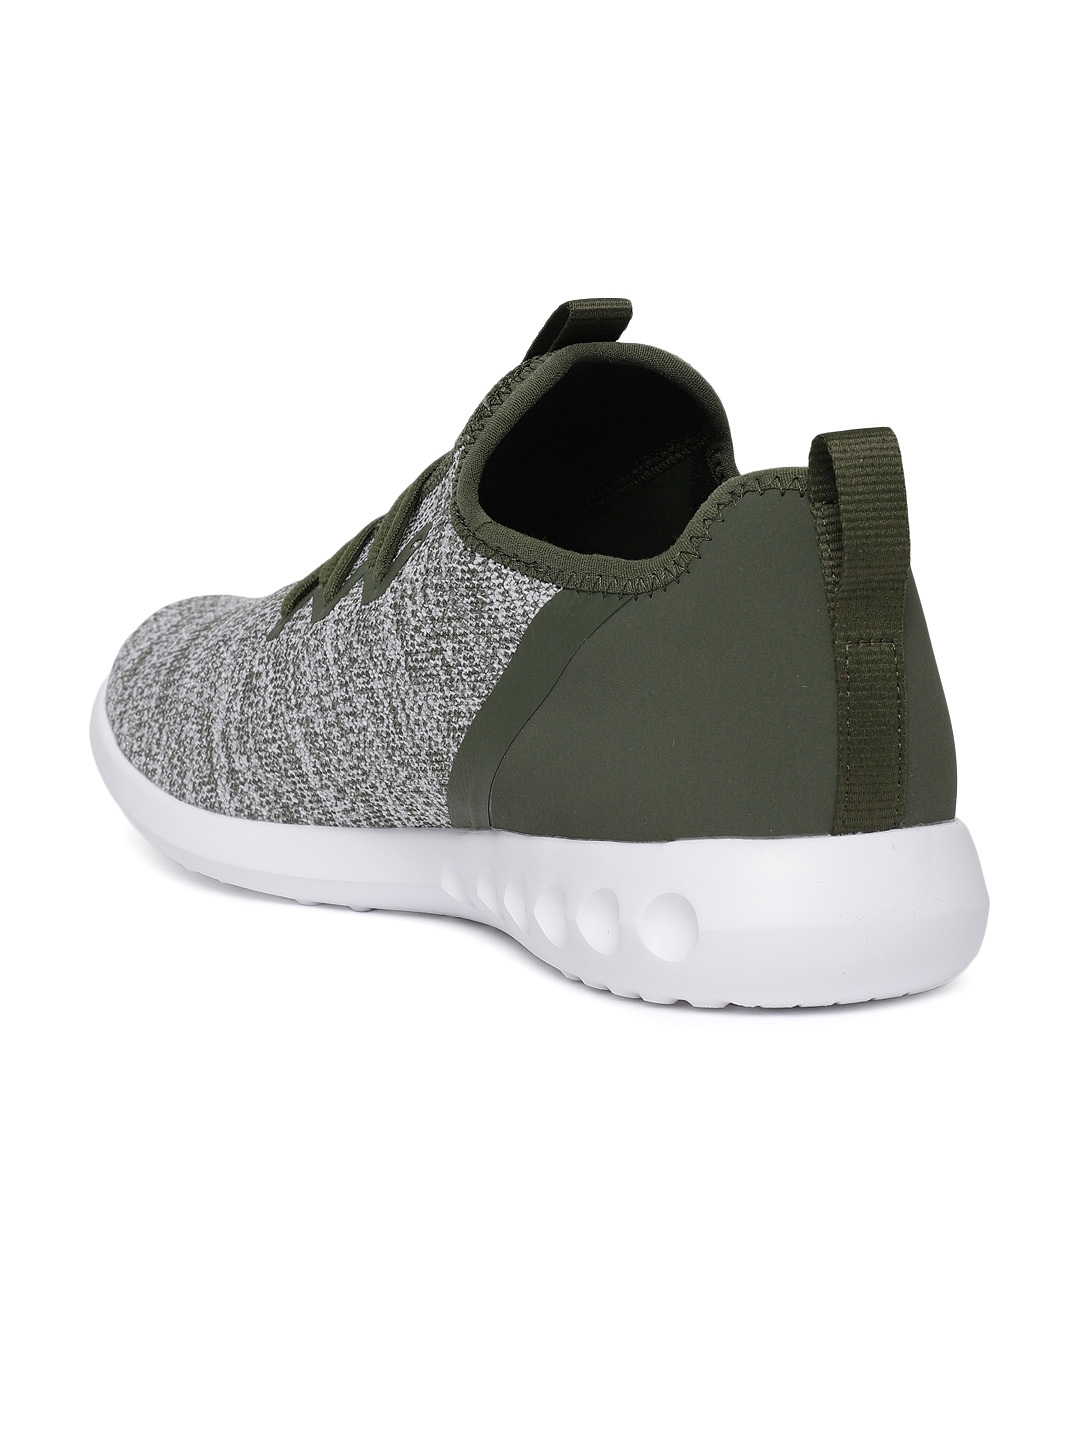 Buy Puma Men Olive   White Carson 2 X Knit Running Shoes - Sports ... 0d7f04f88